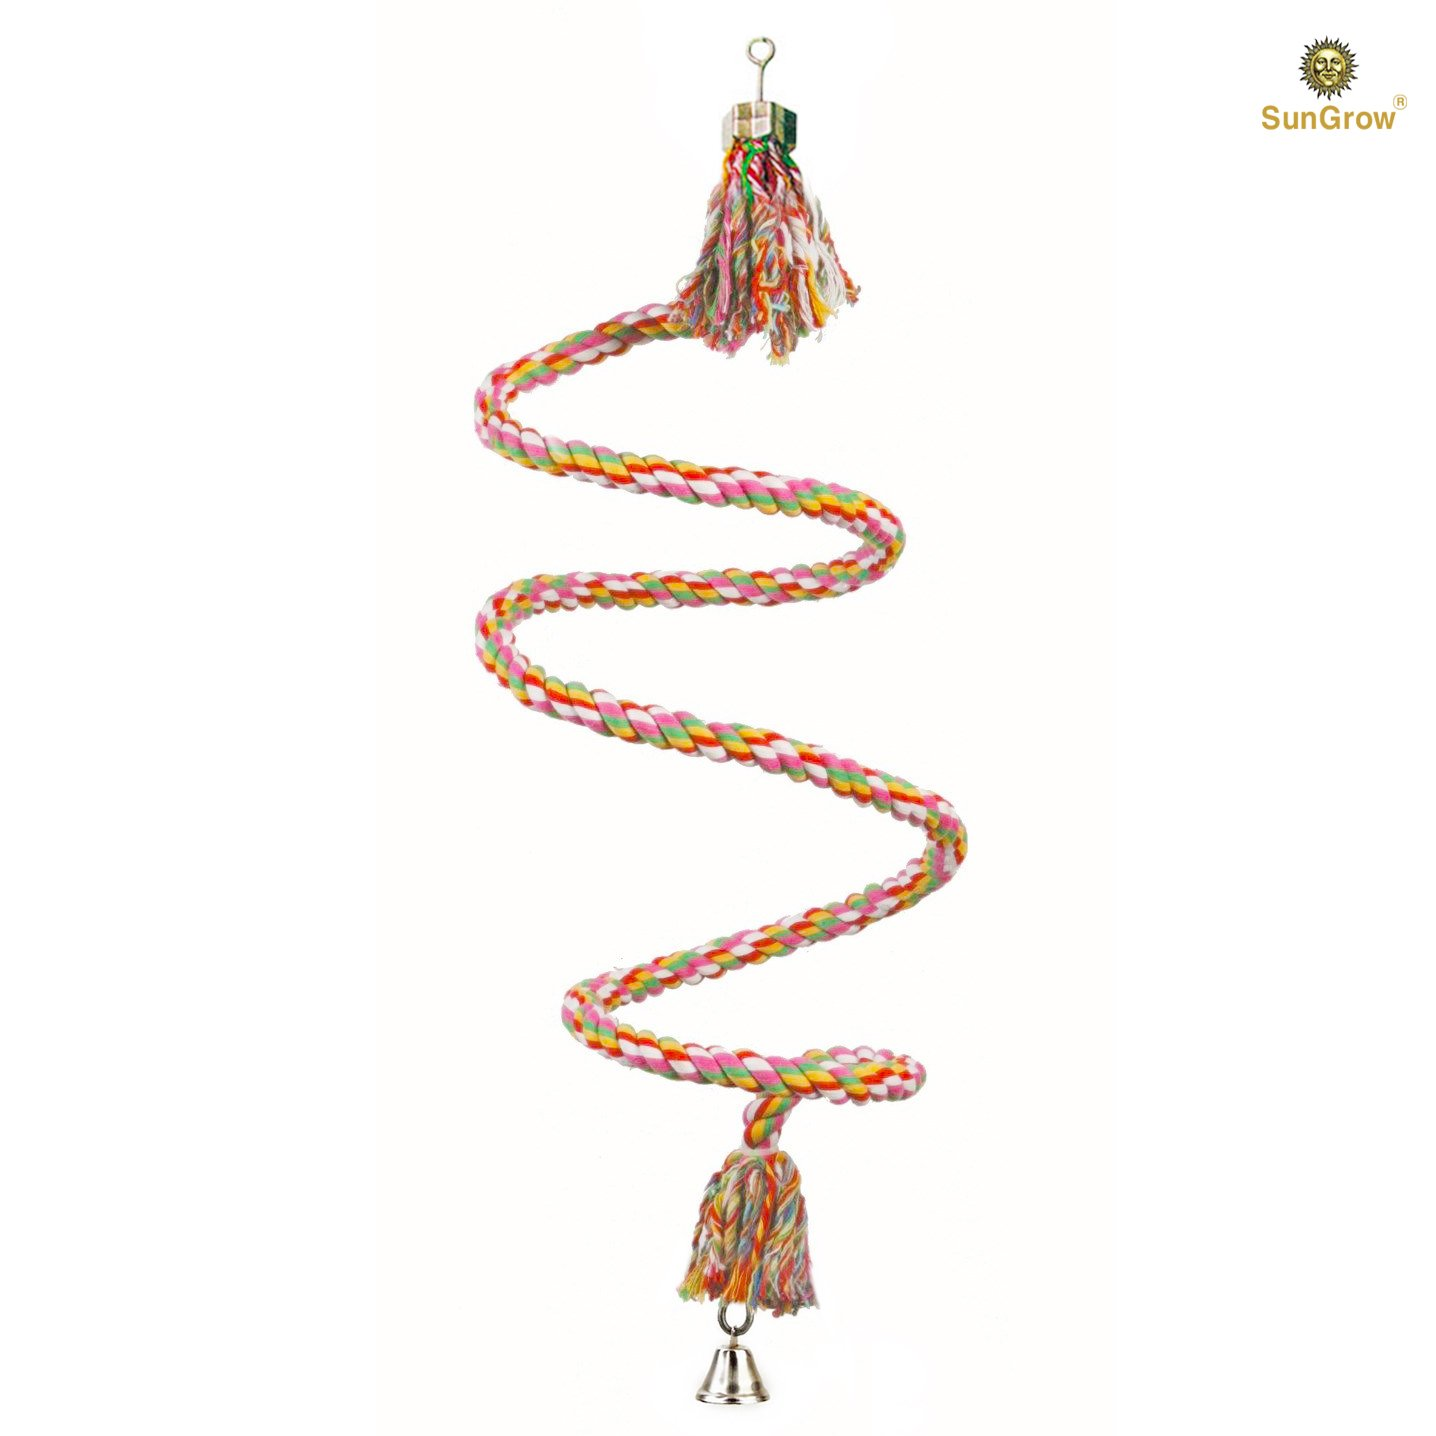 Brightly Colored Handmade Eco Friendly SunGrow Rope Perch and Chew Toy for Birds - Ideal for Relaxing or Working on Balance and Agility